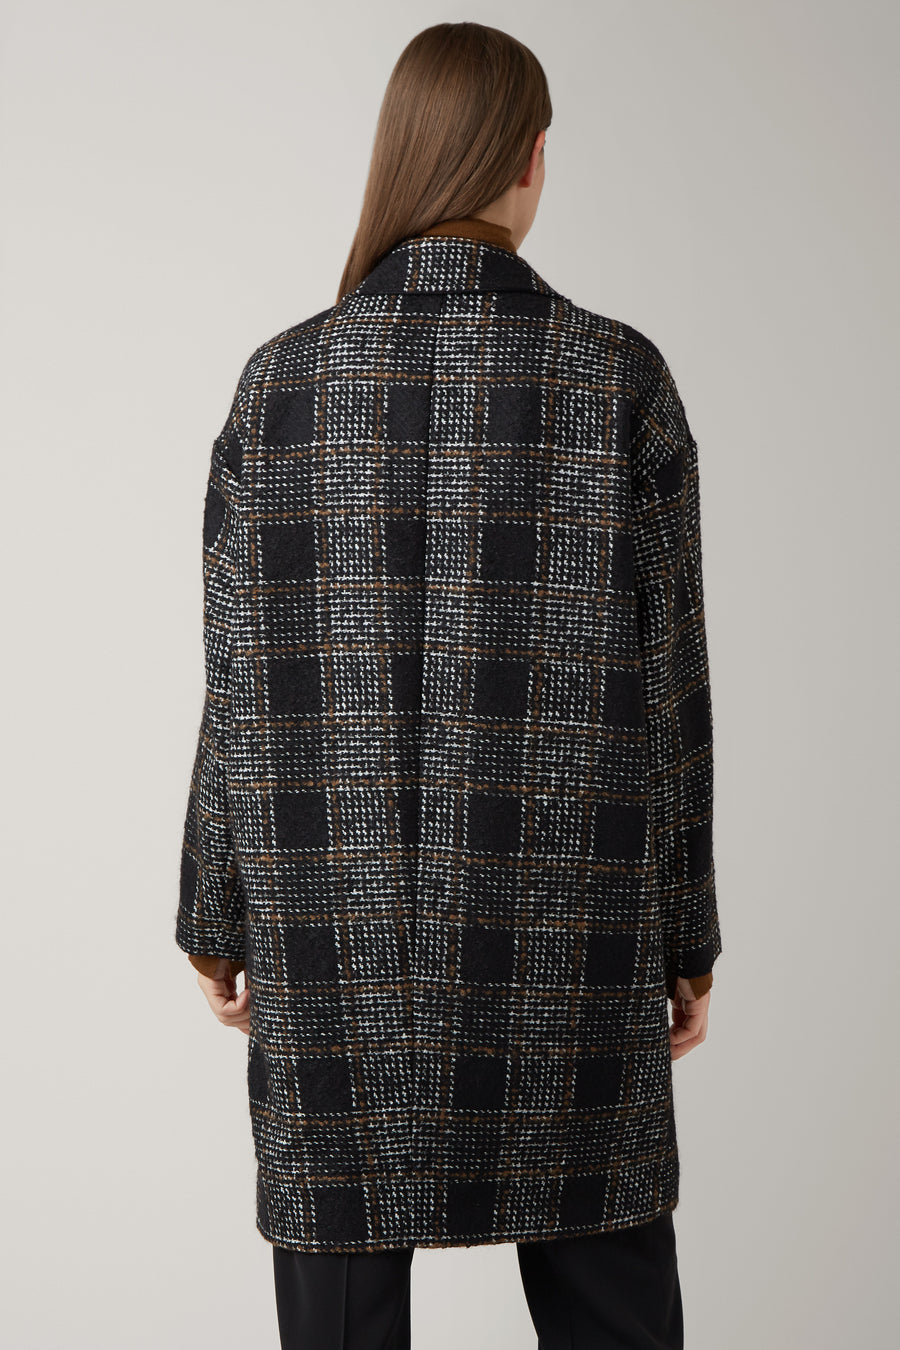 Black/Nutmeg Mona Wool Check Coat